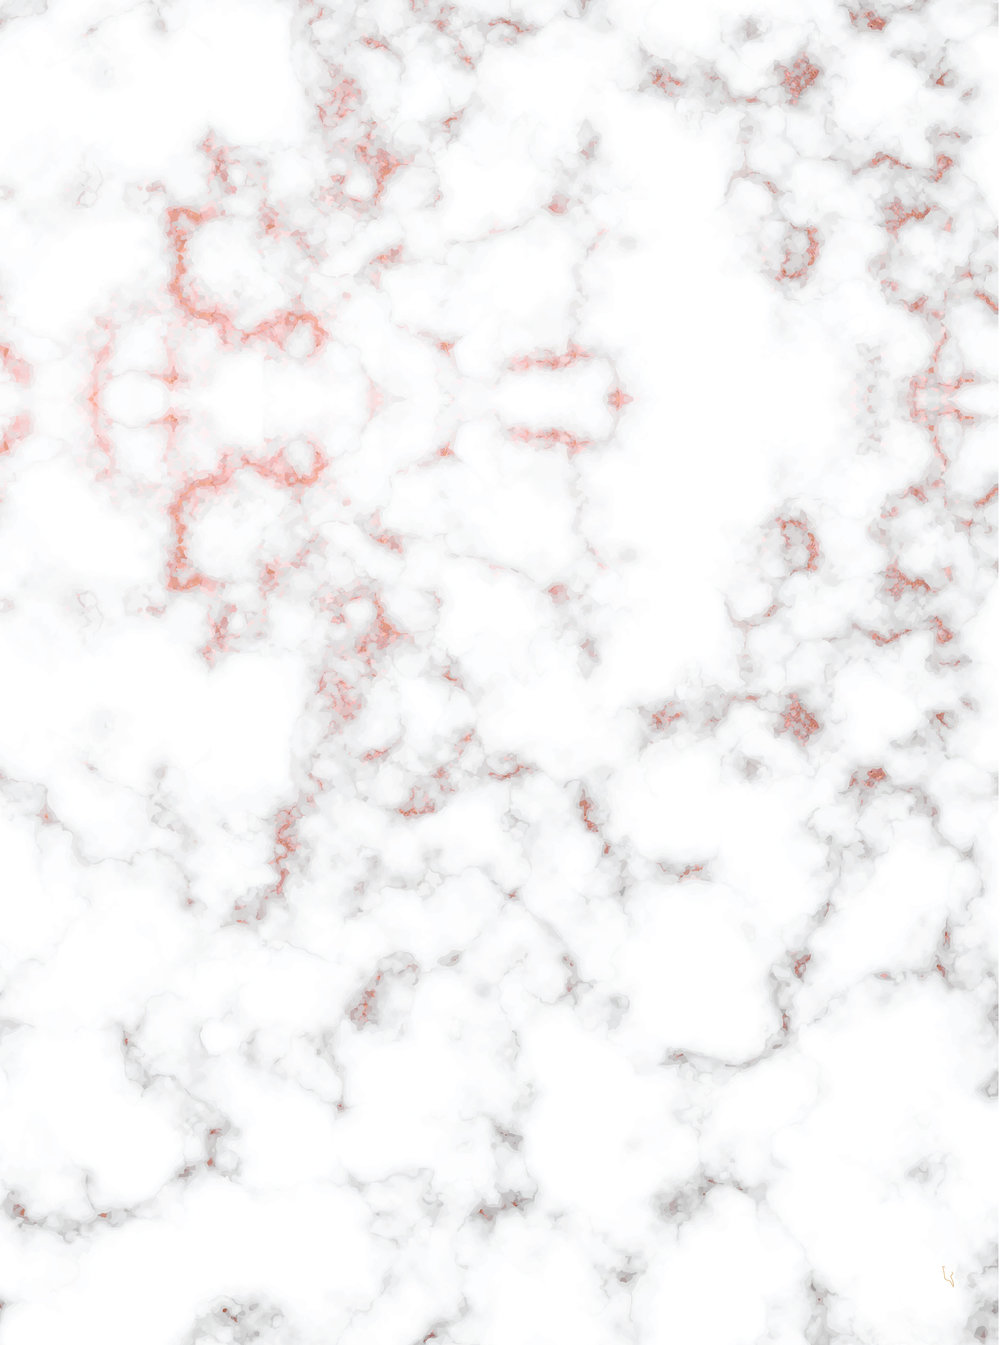 Background #11 (Marble Your Choice of Colors)